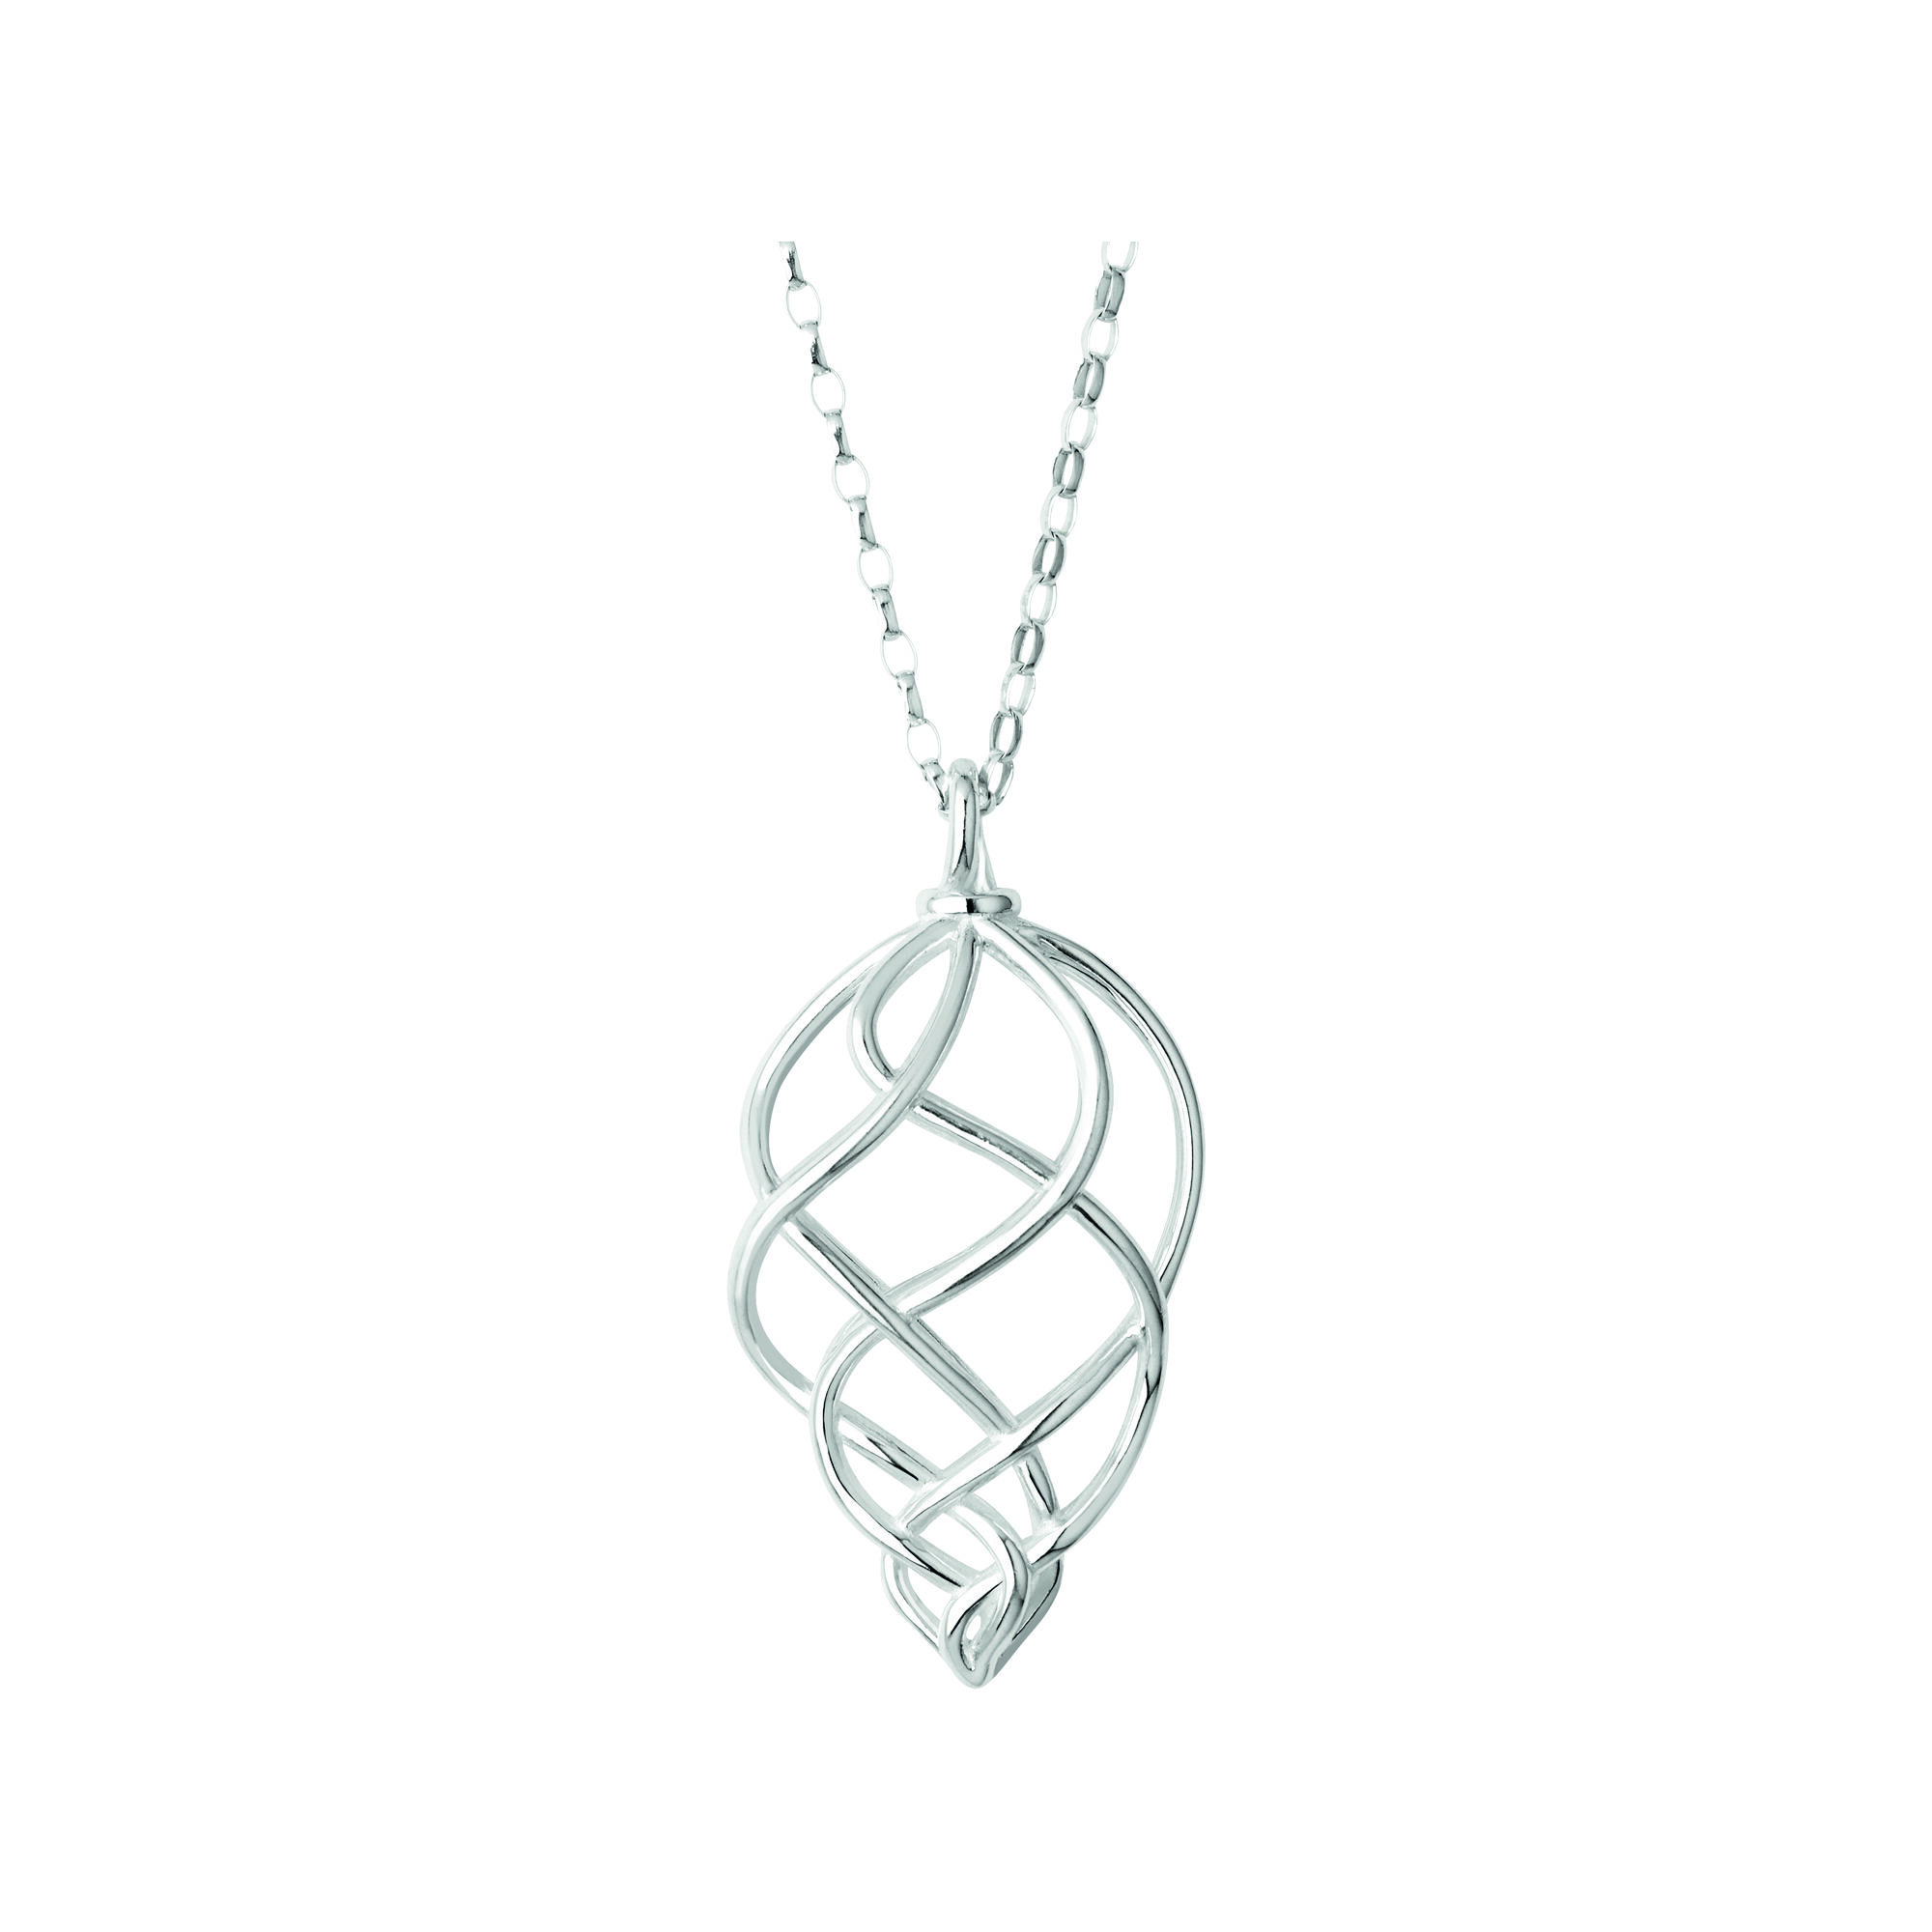 oval necklace jewelry david link ceramic yurman enlarged large necklaces chain products